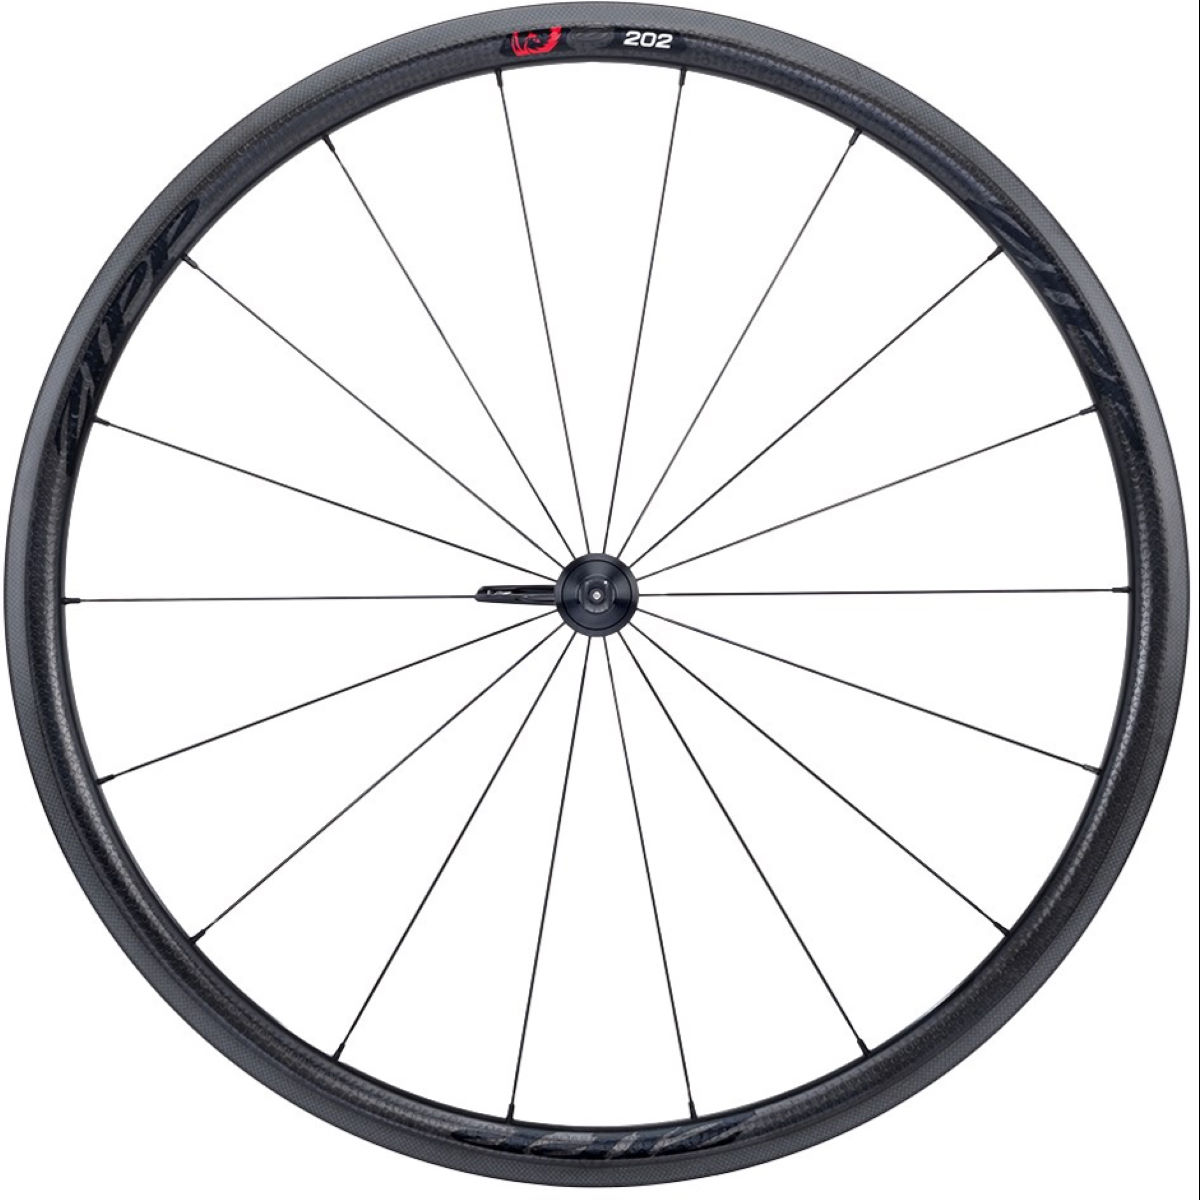 Roue avant Zipp 202 Firecrest (carbone, tringle) - 700c - Clincher Noir/Noir Roues performance